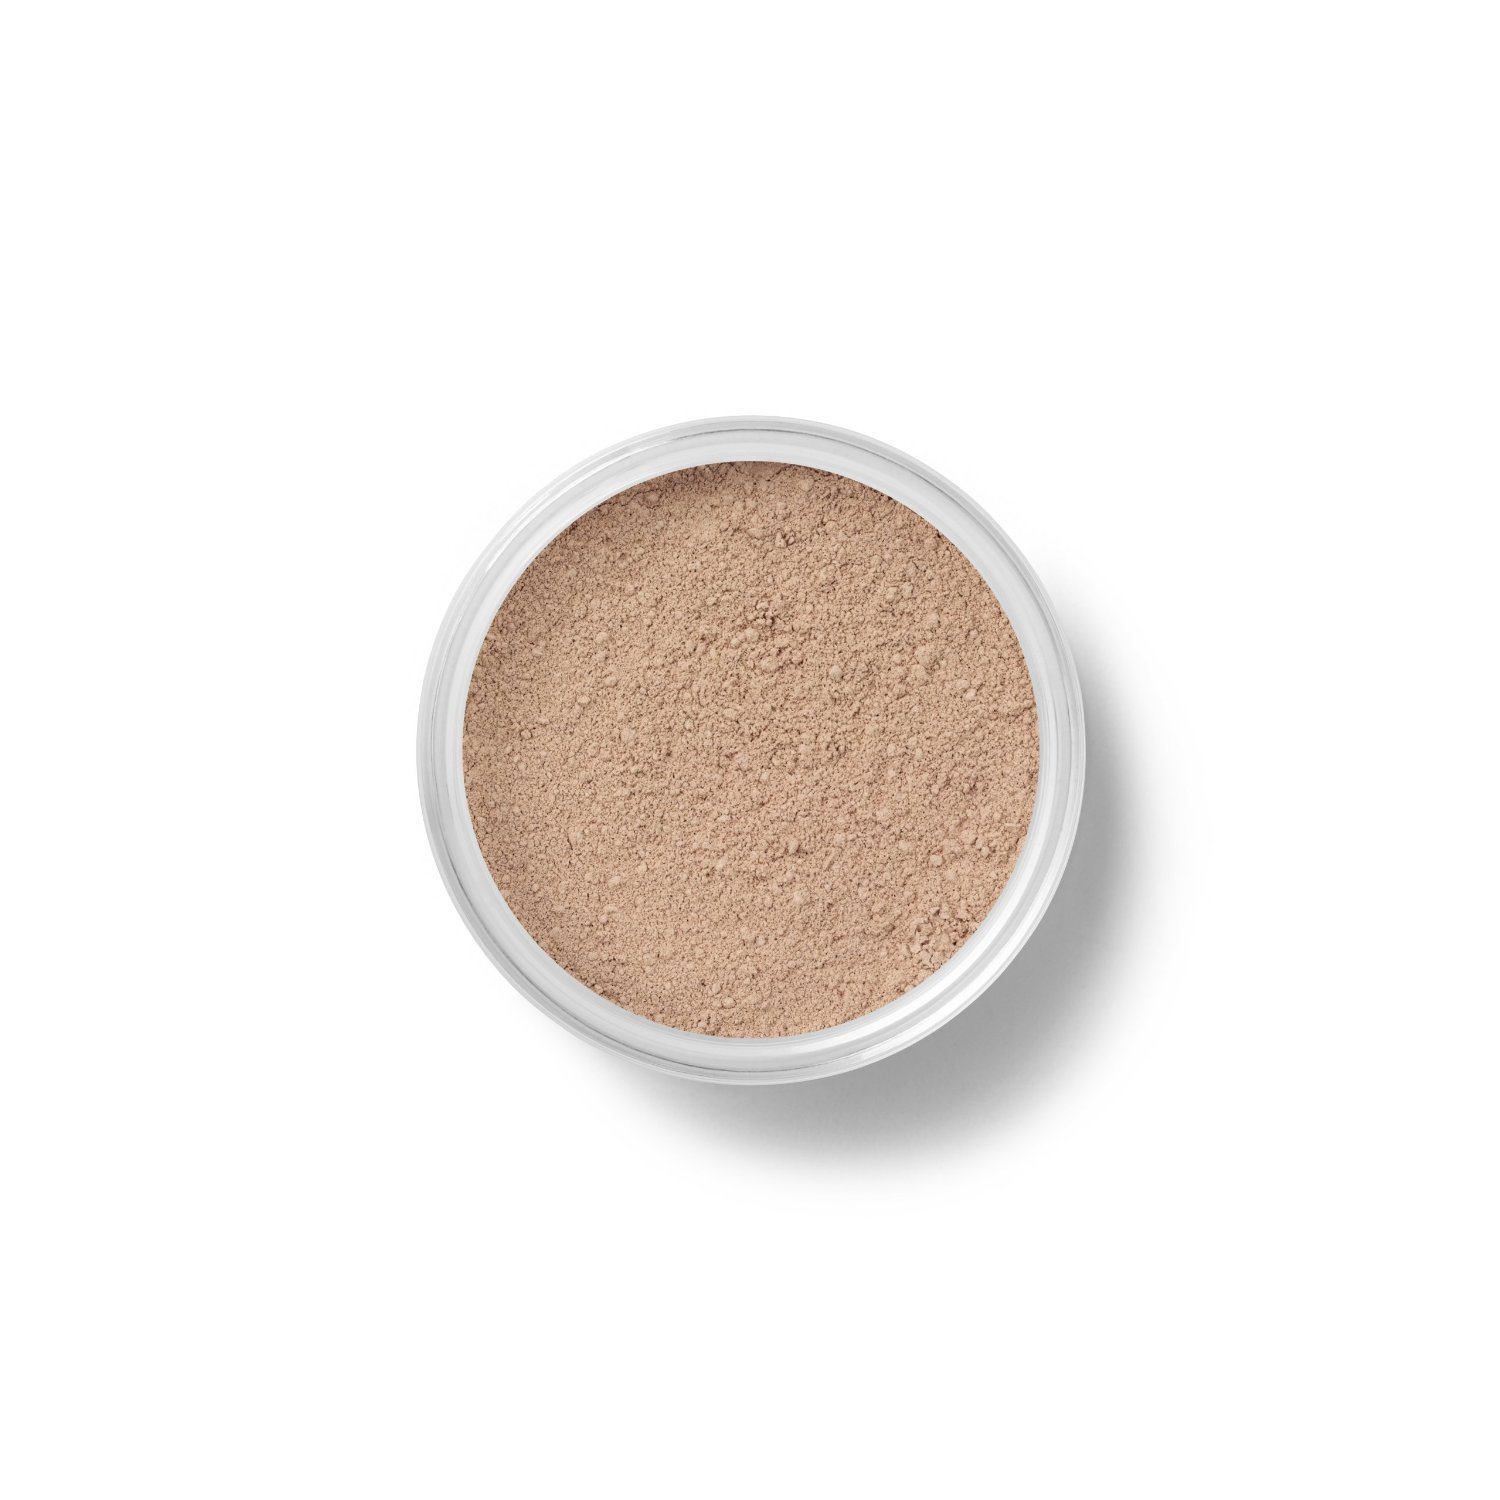 Bareminerals Bisque - Multi-Tasking Concealer Spf20 2G : Facial Care Products : Beauty